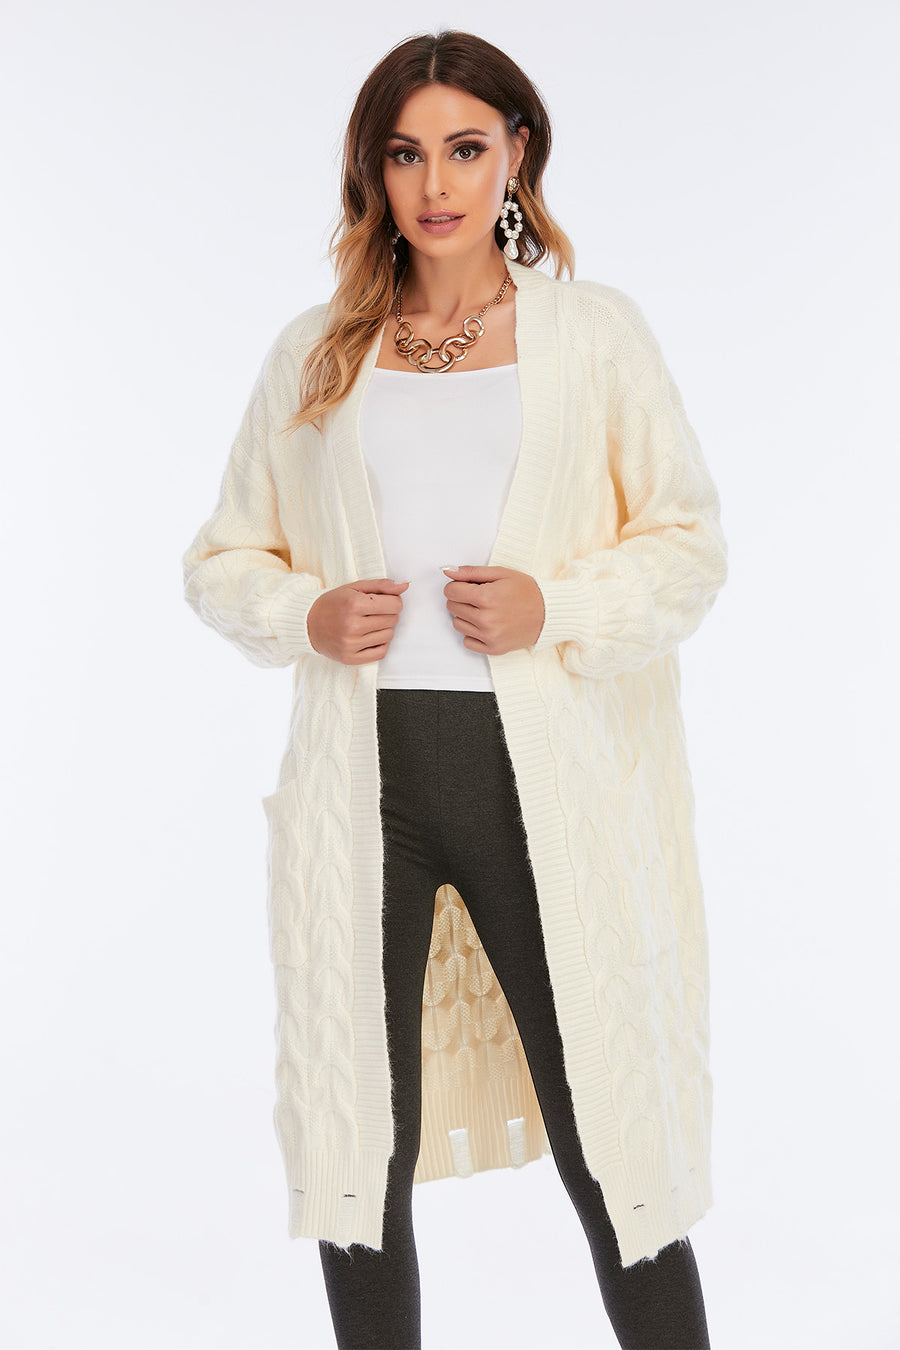 Mantra Pakistan CABLE KNIT CARDIGAN | Western Wear